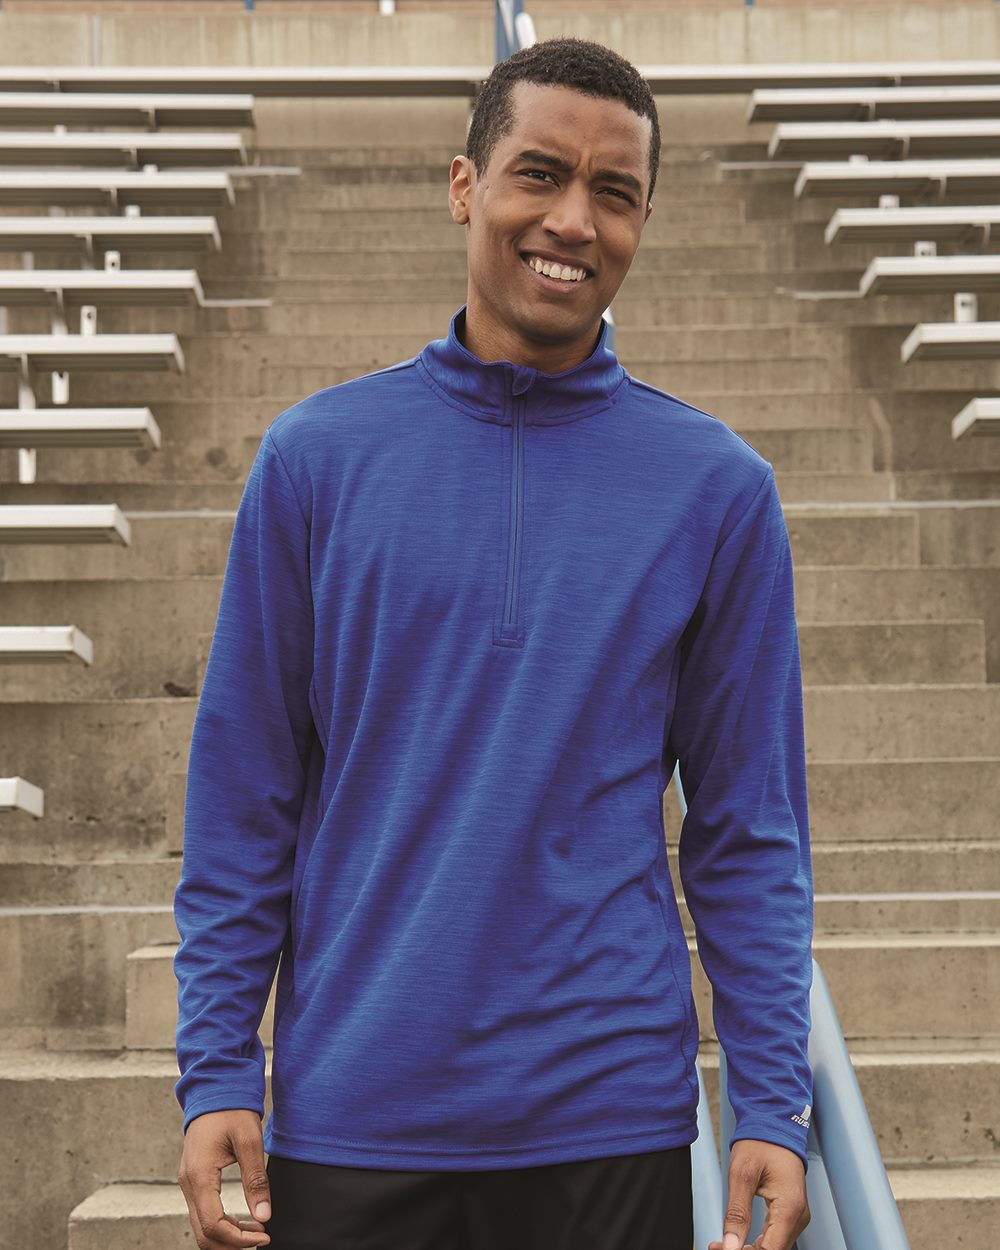 Russell Athletic QZ7EAM - Men's Striated Quarter-Zip ...